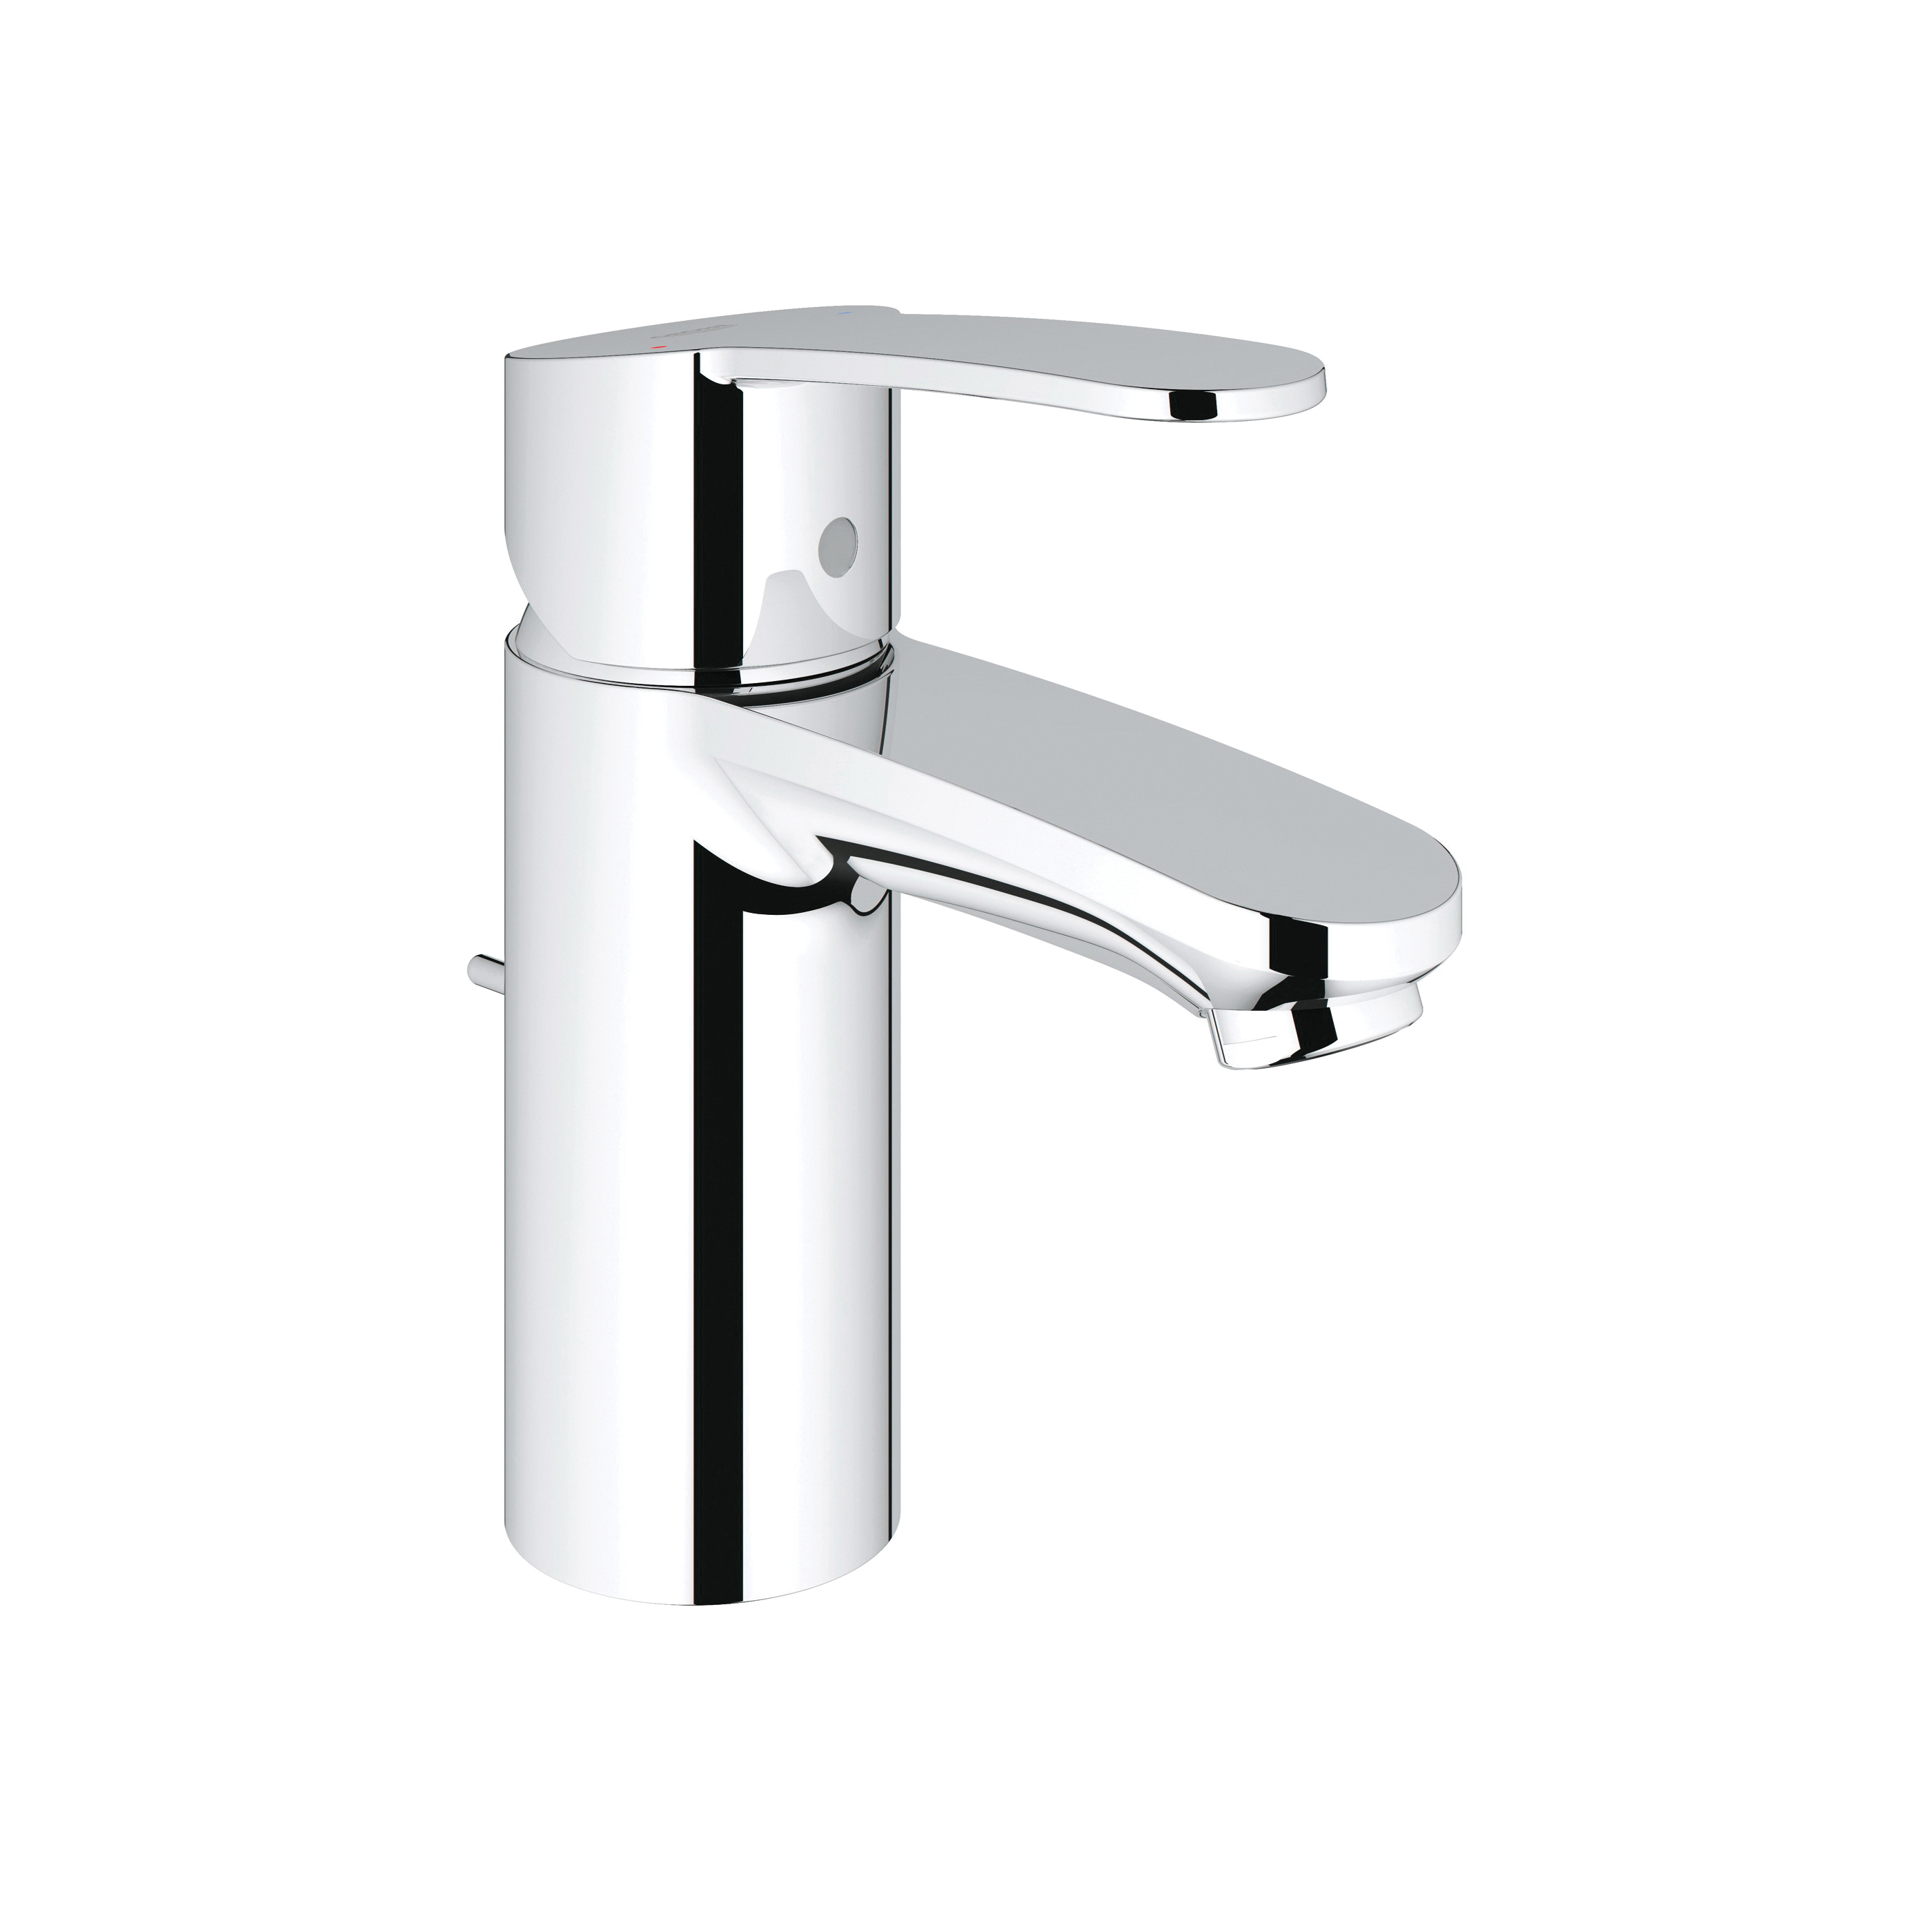 GROHE 2303600A Eurostyle™ Cosmopolitan Small Lavatory Faucet, 1.2 gpm, 3-5/16 in H Spout, 1 Handle, Pop-Up Drain, 1 Faucet Hole, StarLight® Chrome, Import